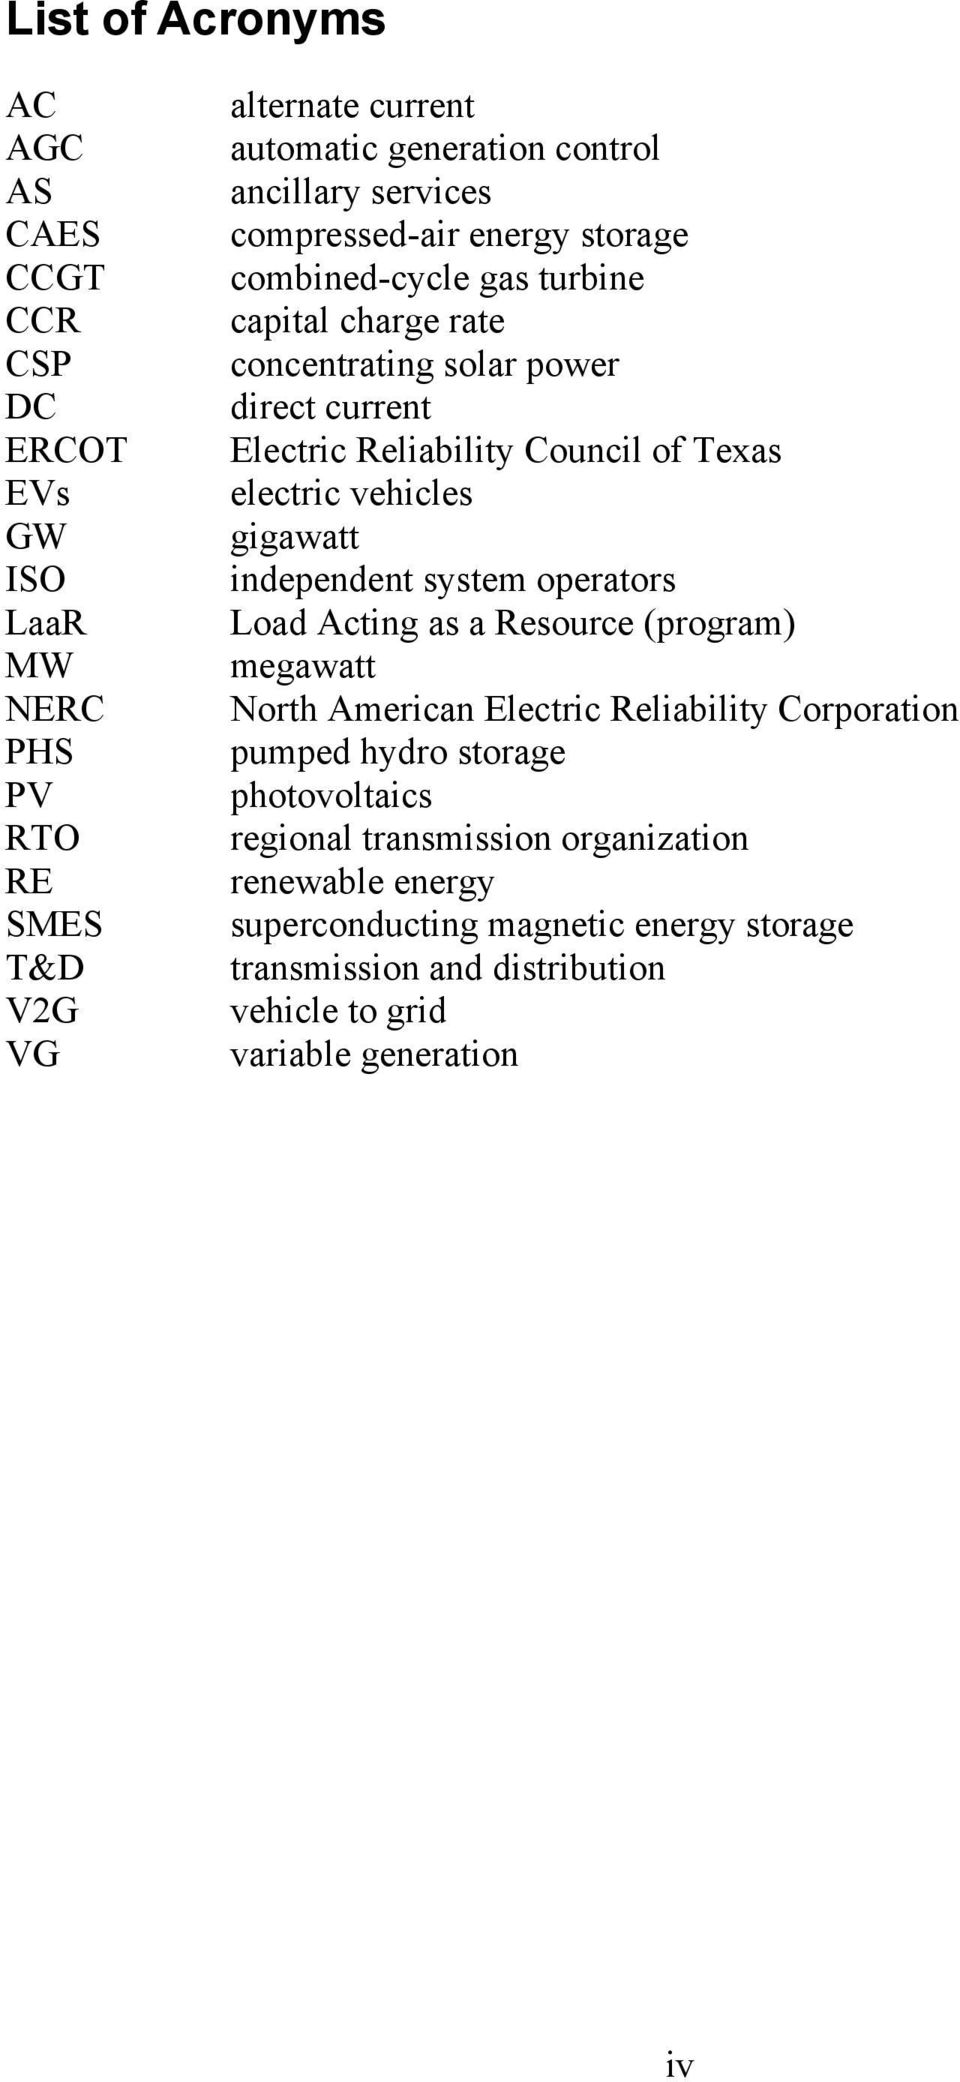 electric vehicles gigawatt independent system operators Load Acting as a Resource (program) megawatt North American Electric Reliability Corporation pumped hydro